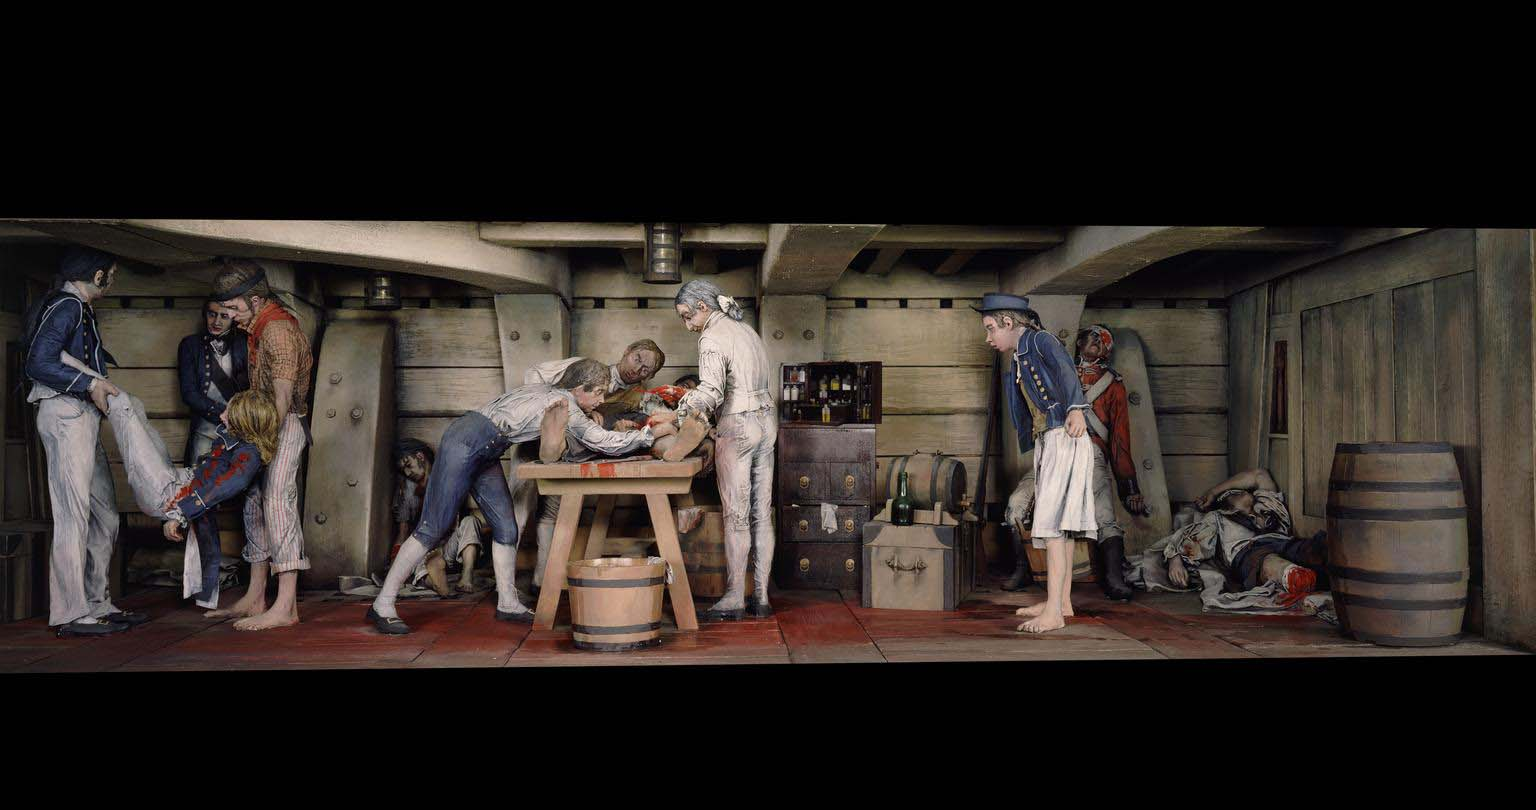 a photo of a diorama showing a ship's deck with sailors being carried and operated on